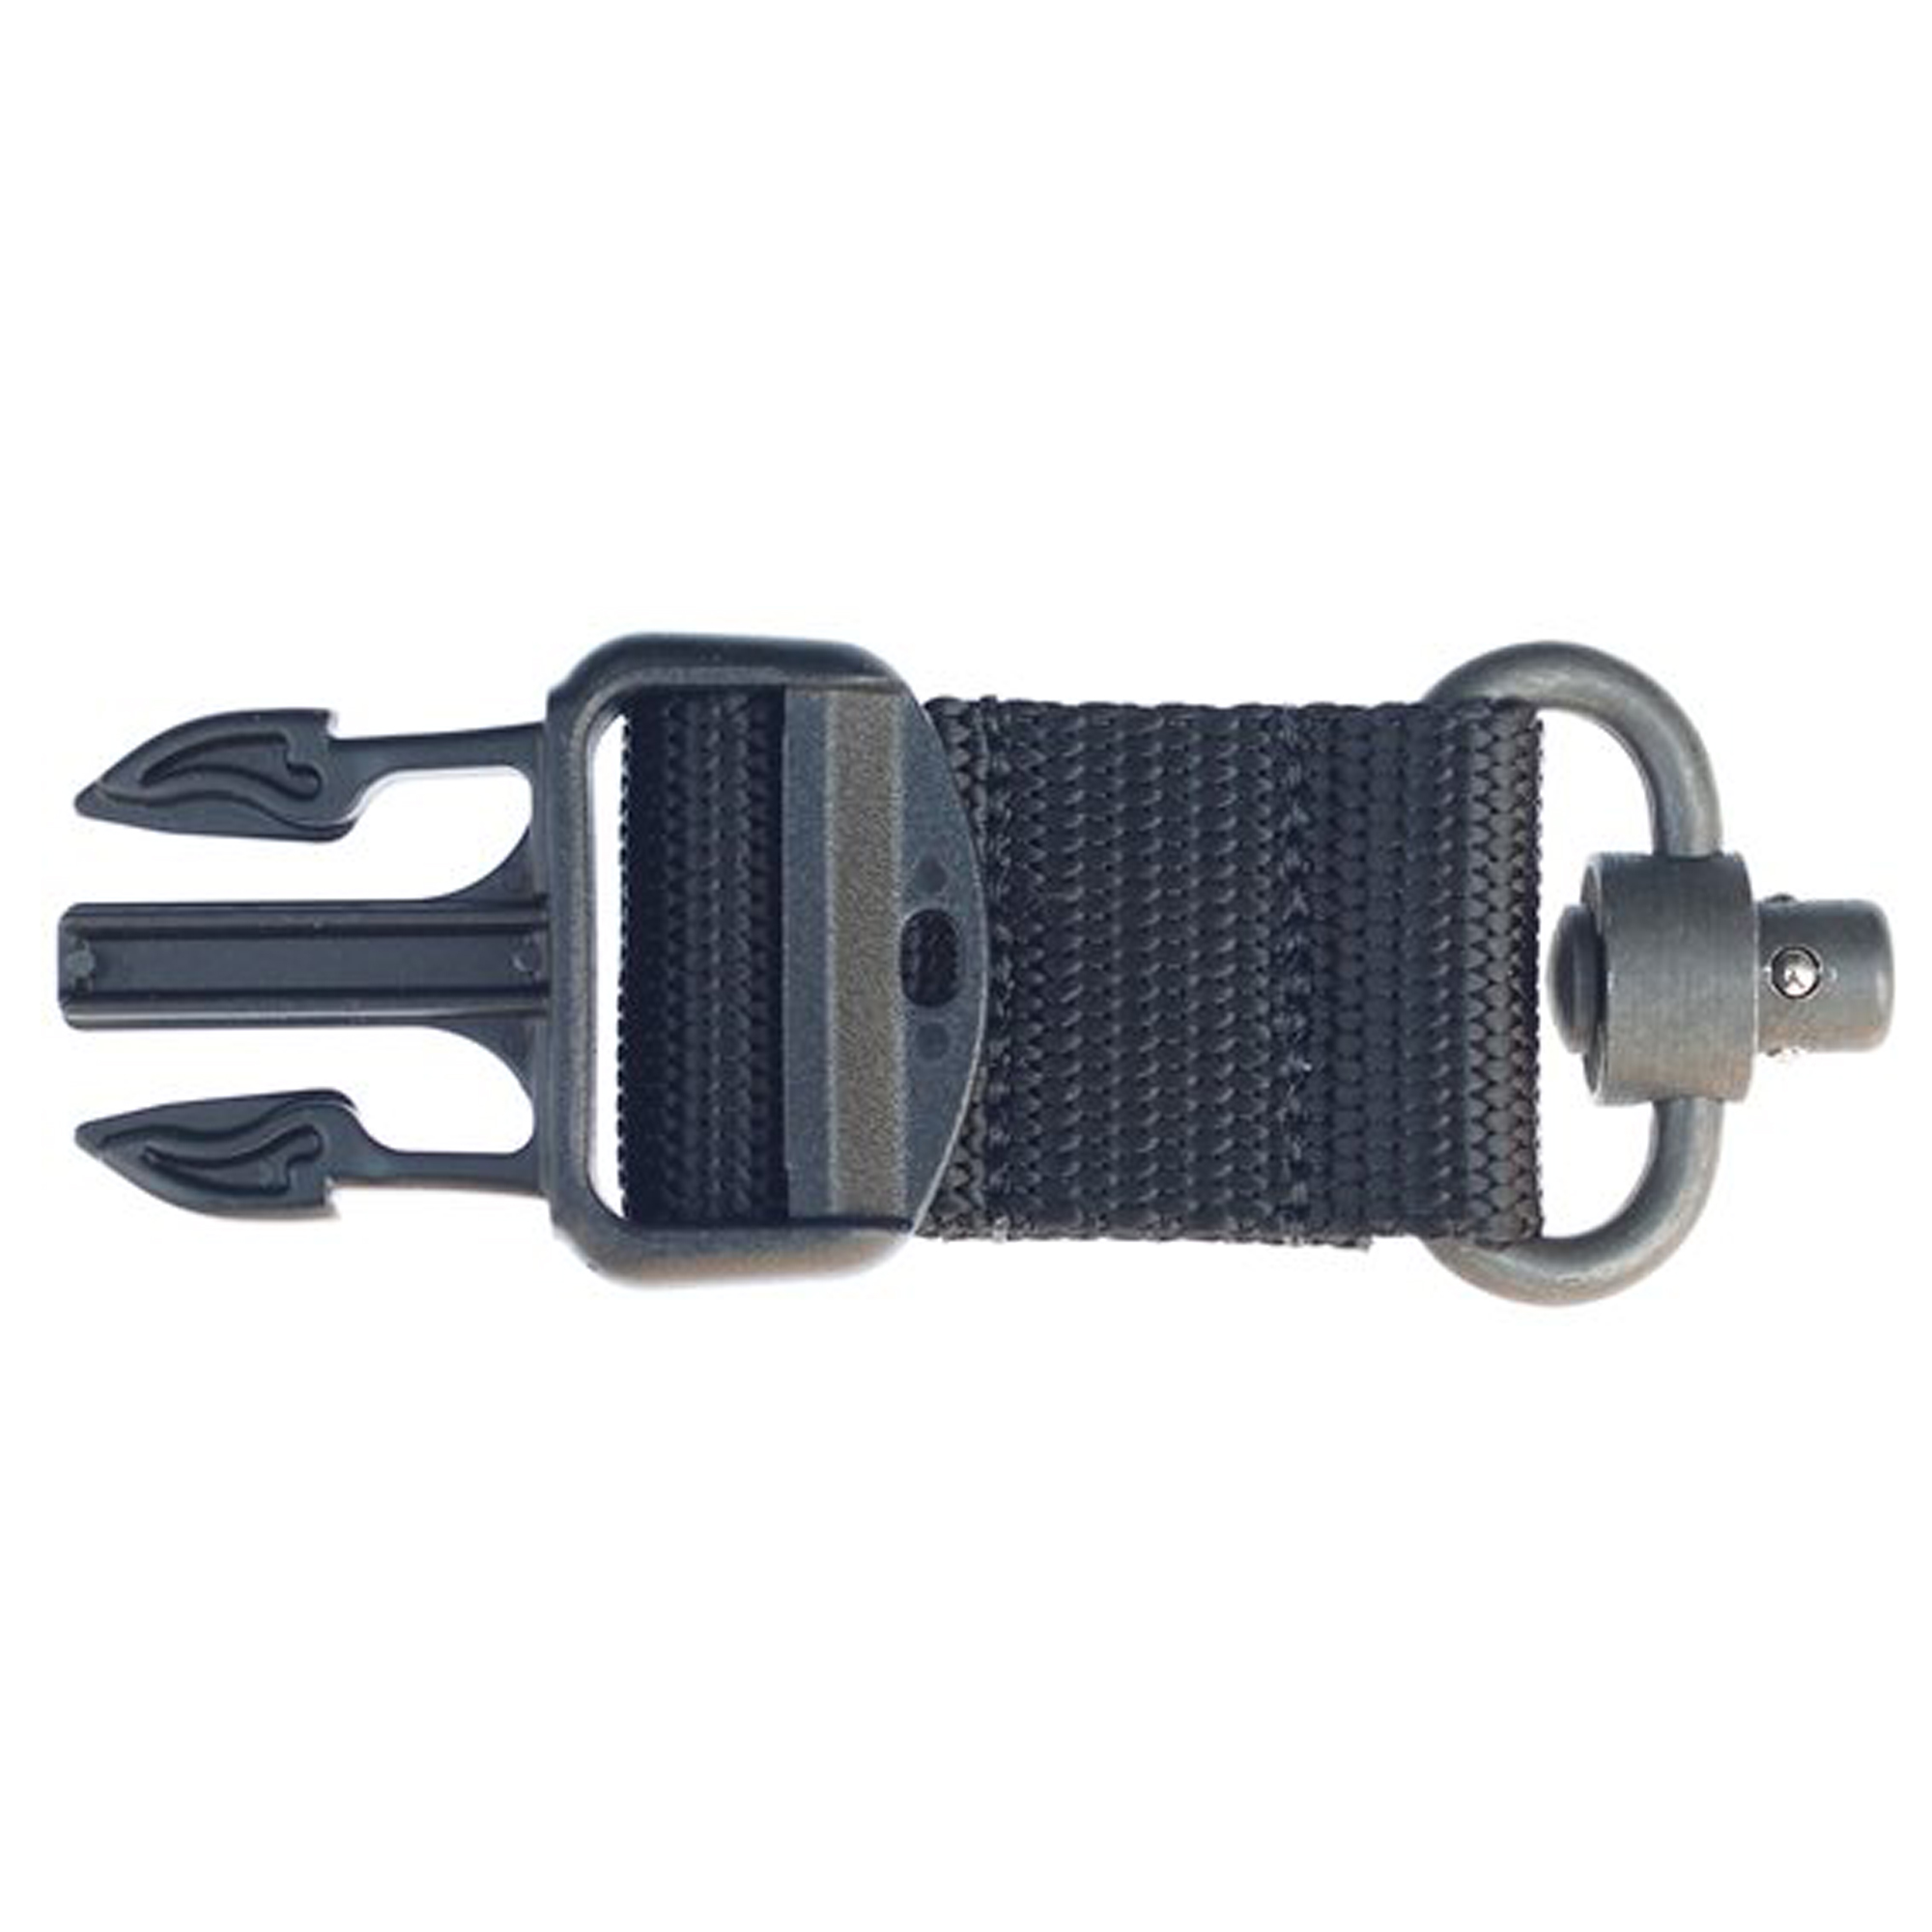 """Compatible with STORM Sling(TM) RS"""" QD"""" XT and Sub-Gun Sling"""" this quick detach features heavy-duty construction."""